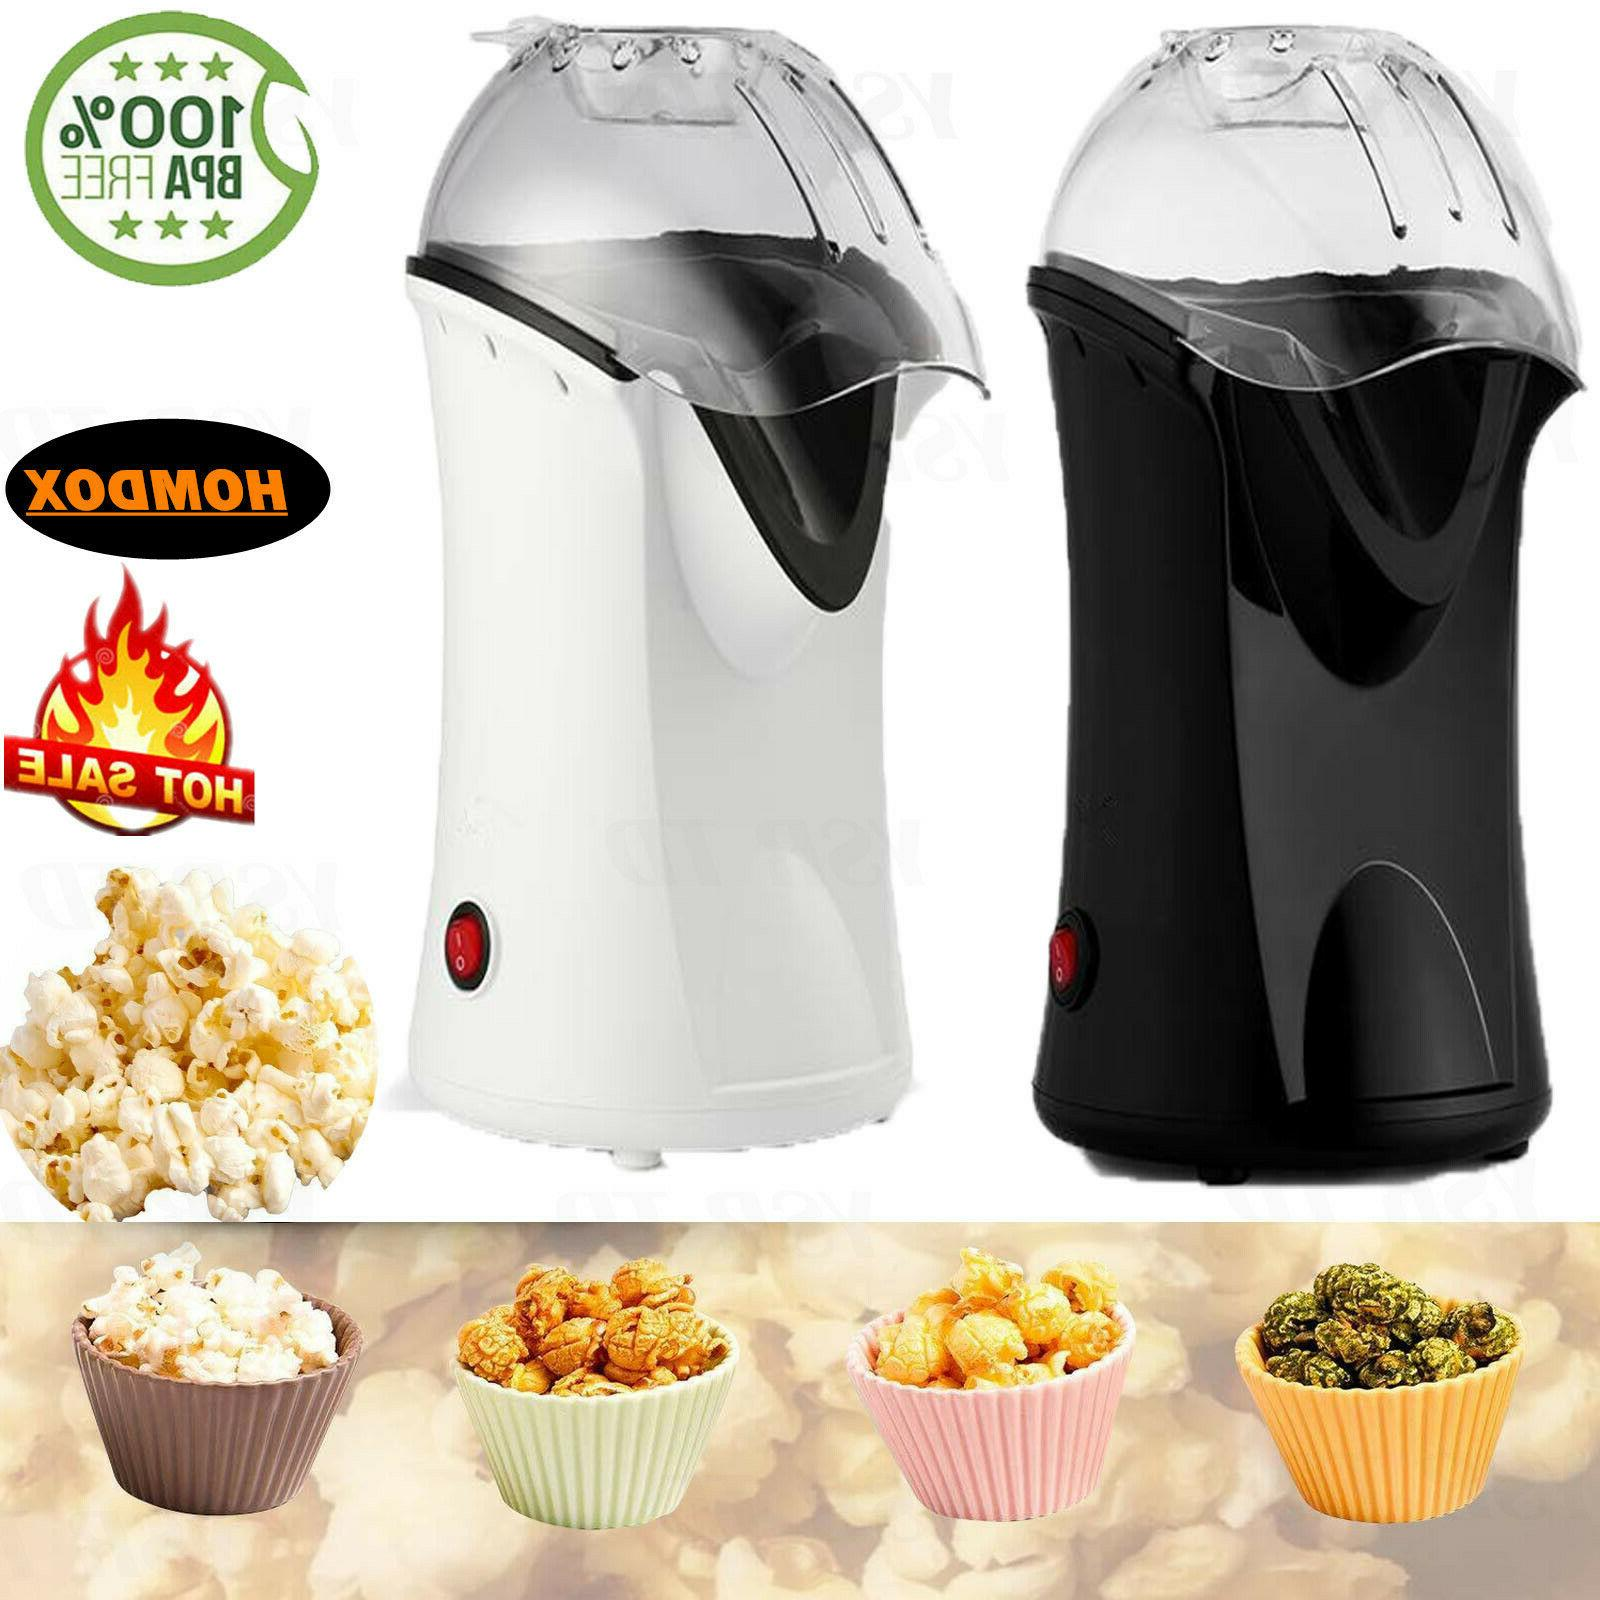 Homdox Air Machine, Popper, Electric Popcorn Maker